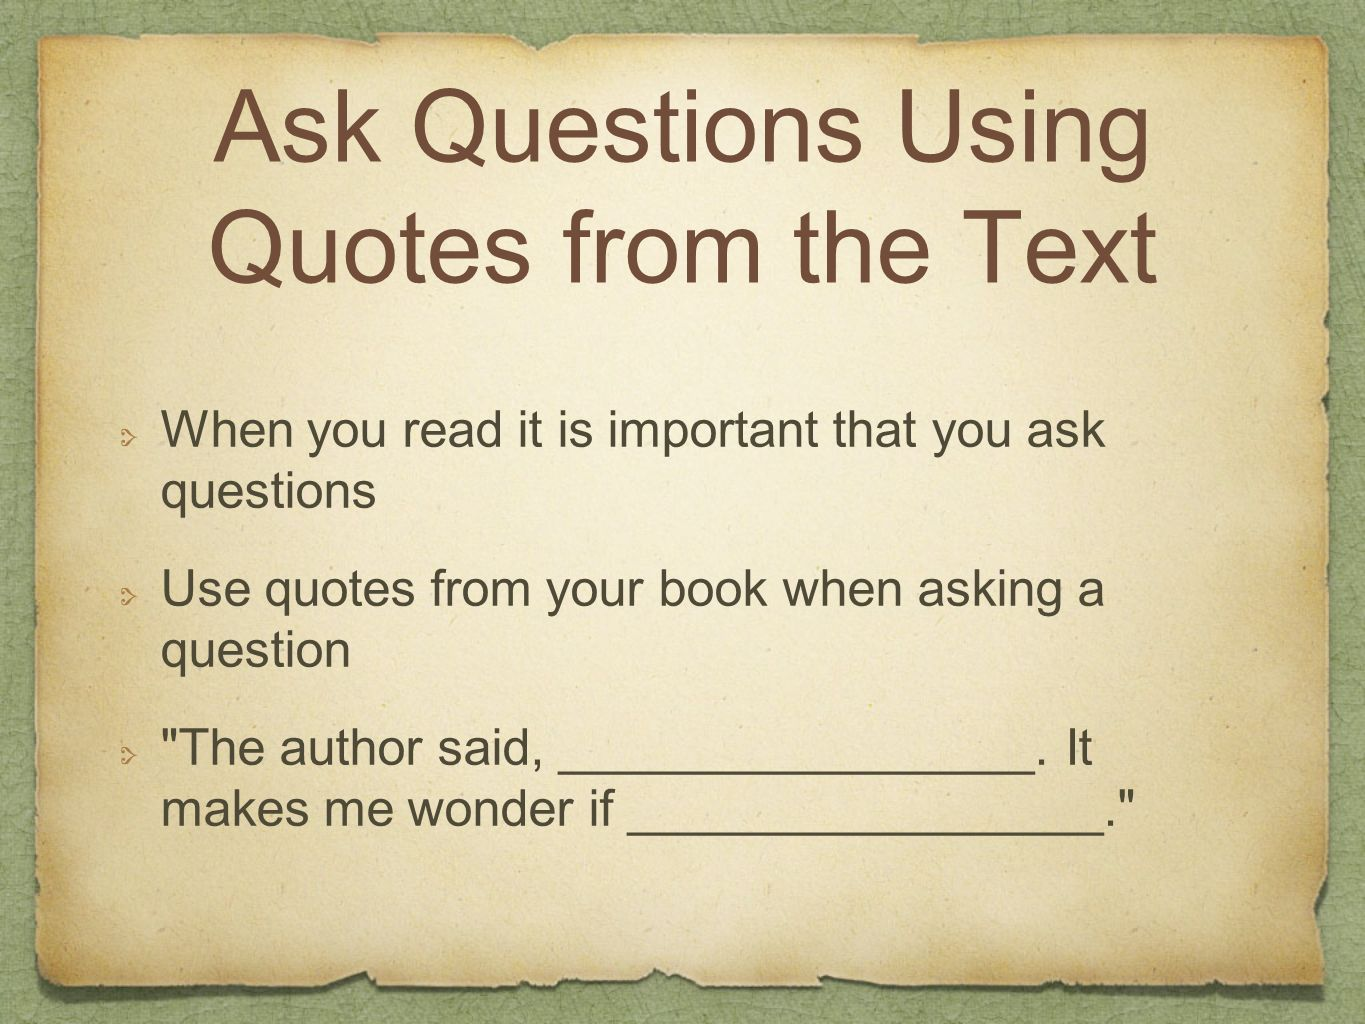 Ask Questions Using Quotes from the Text